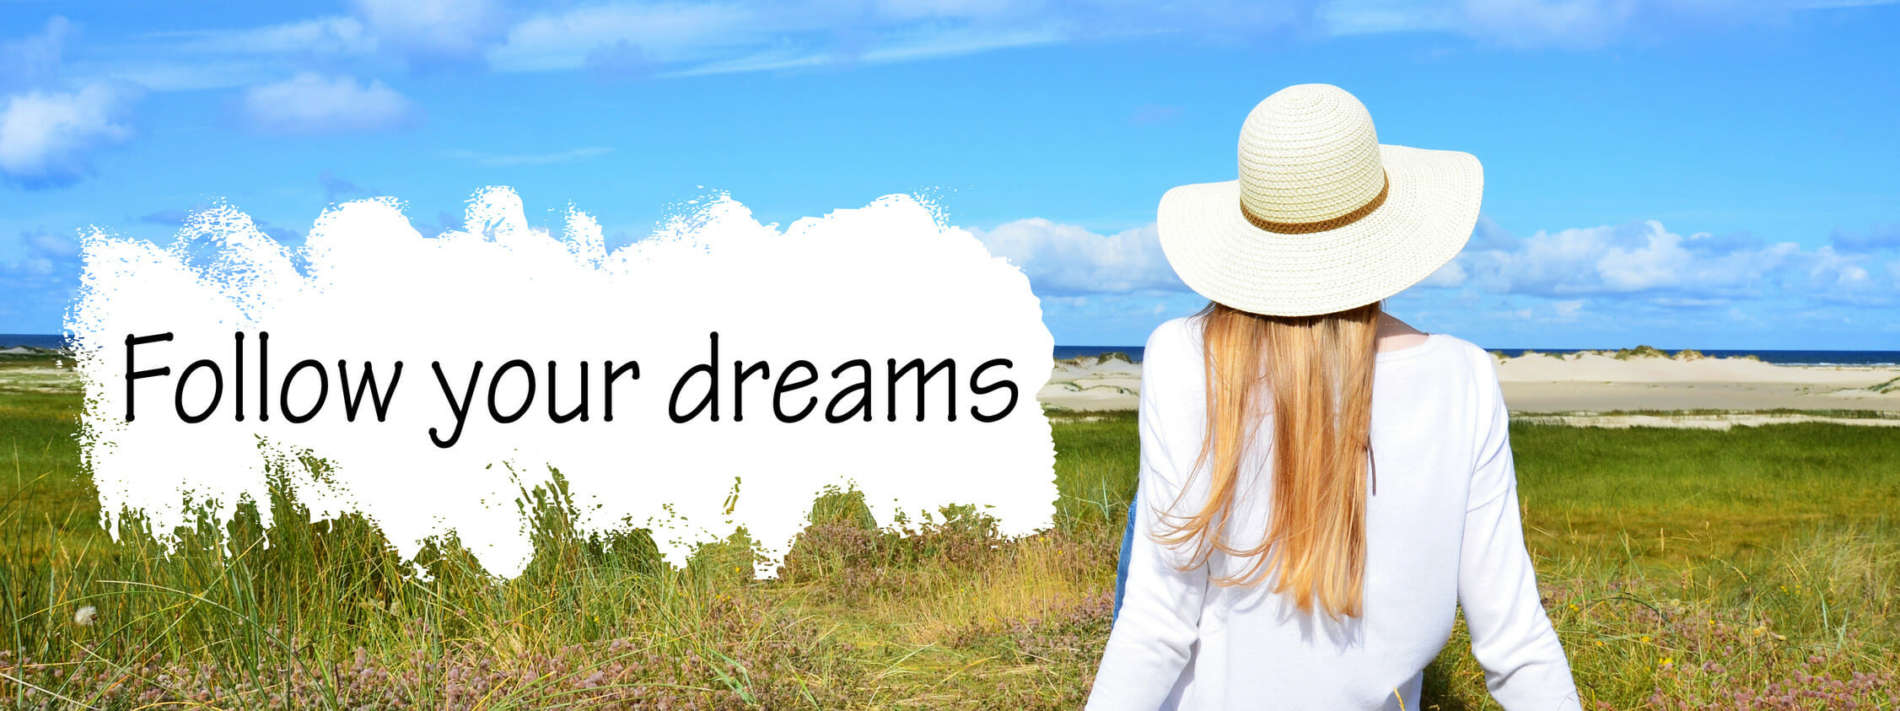 Follow your dreams - Hypnose Bamberg - Hypnosetherapie Bamberg